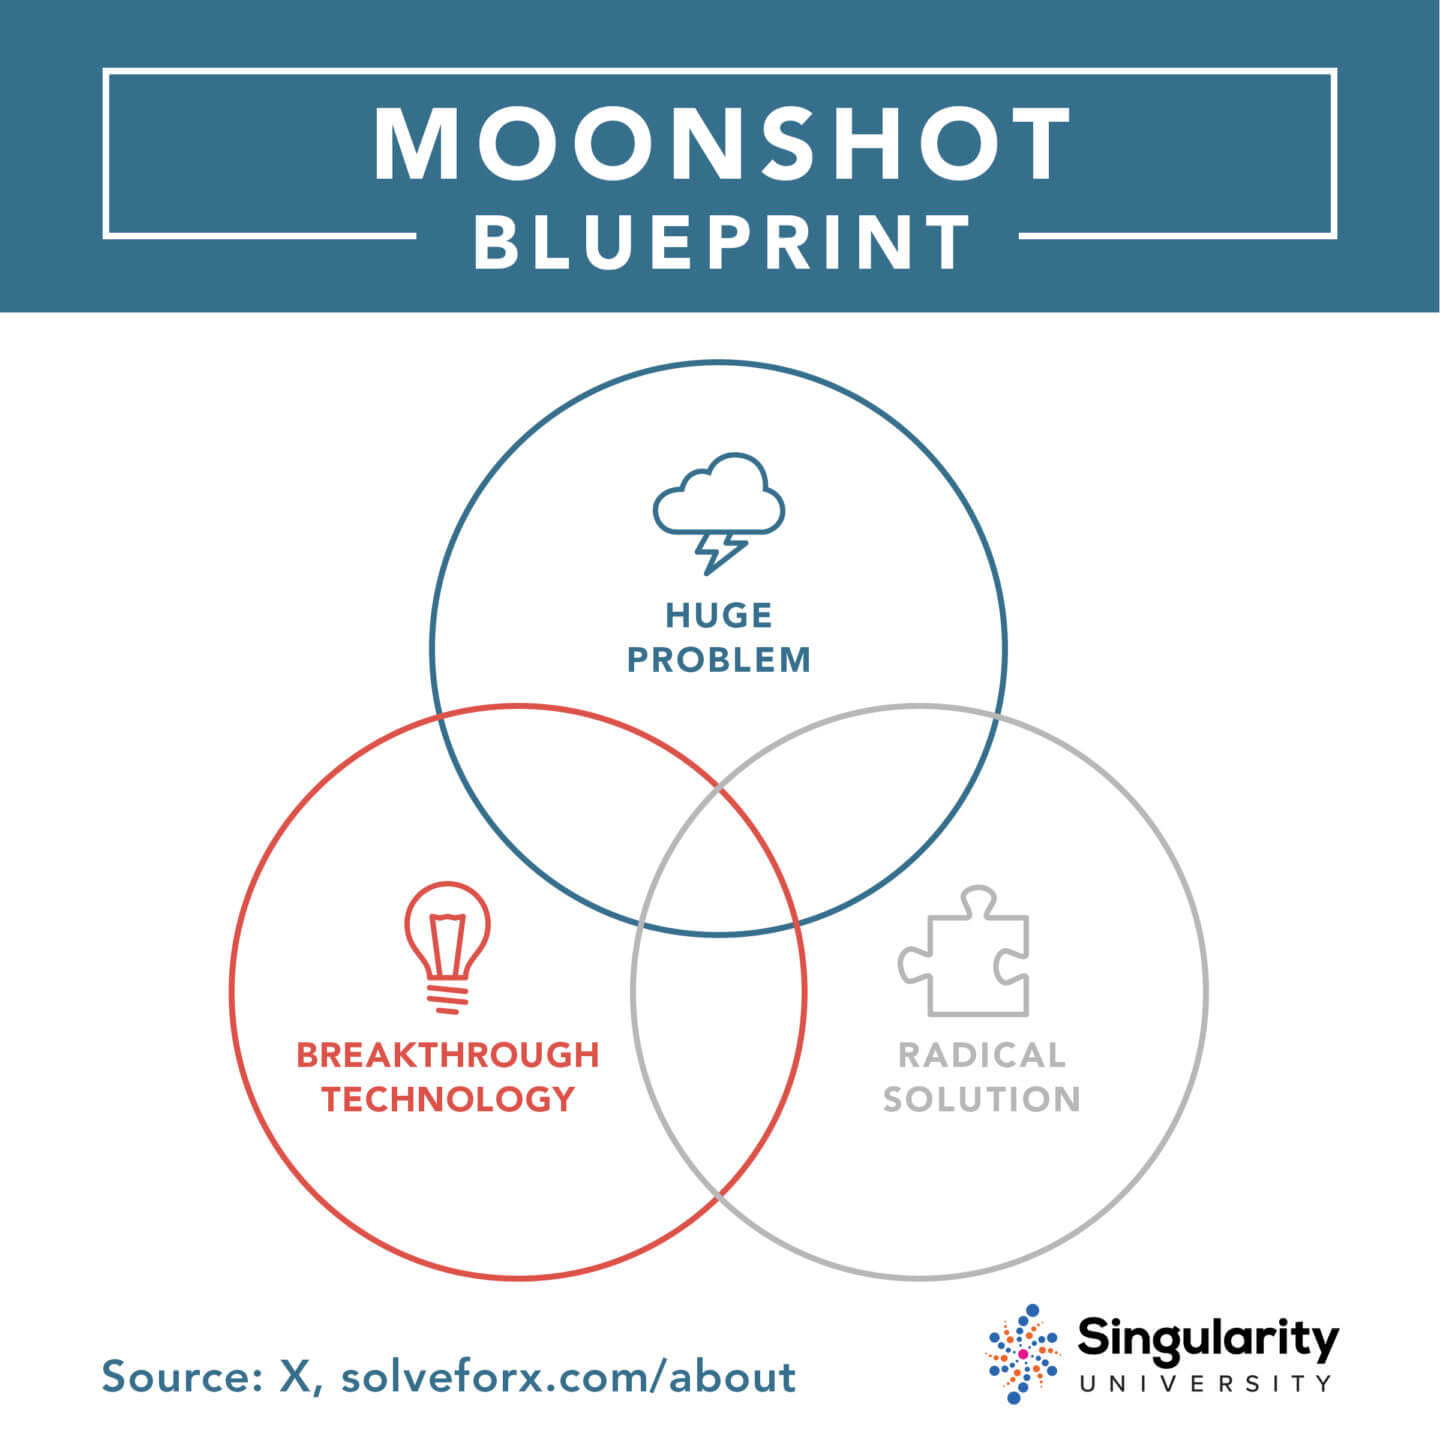 moonshot-blueprint-v2